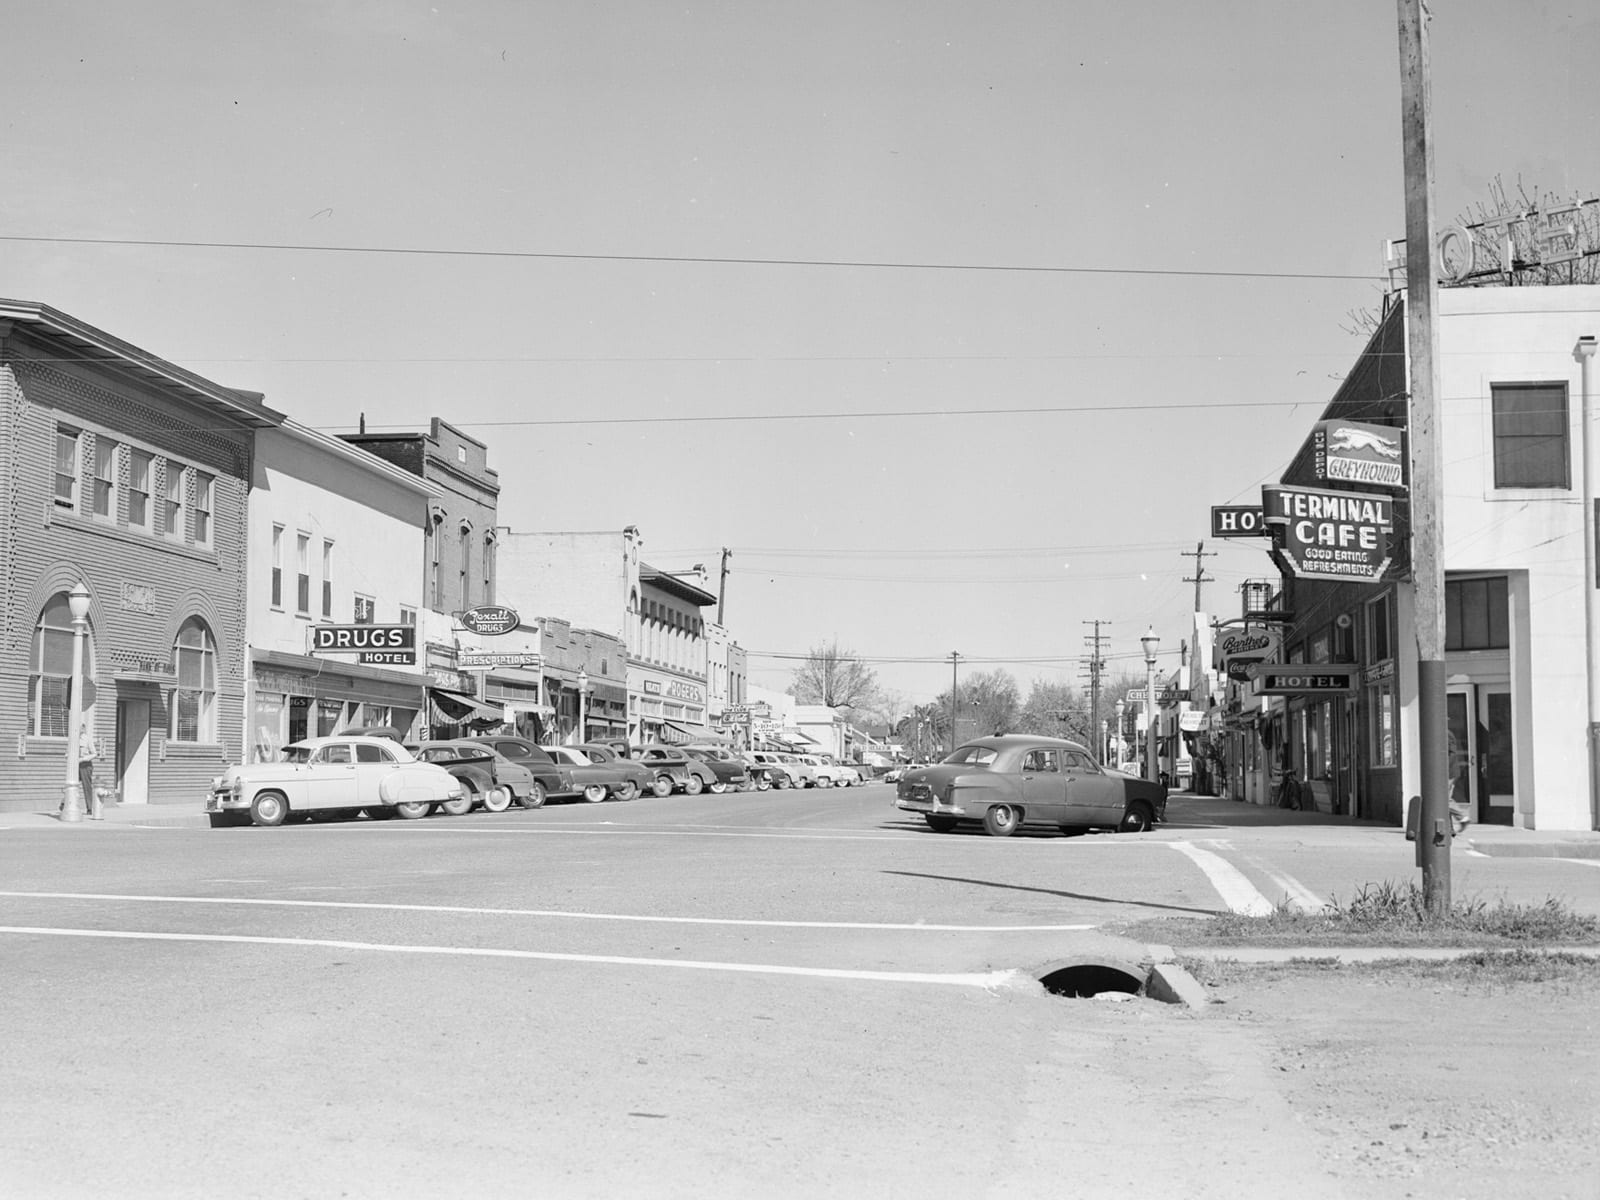 G street at Second Street, looking north, 1951